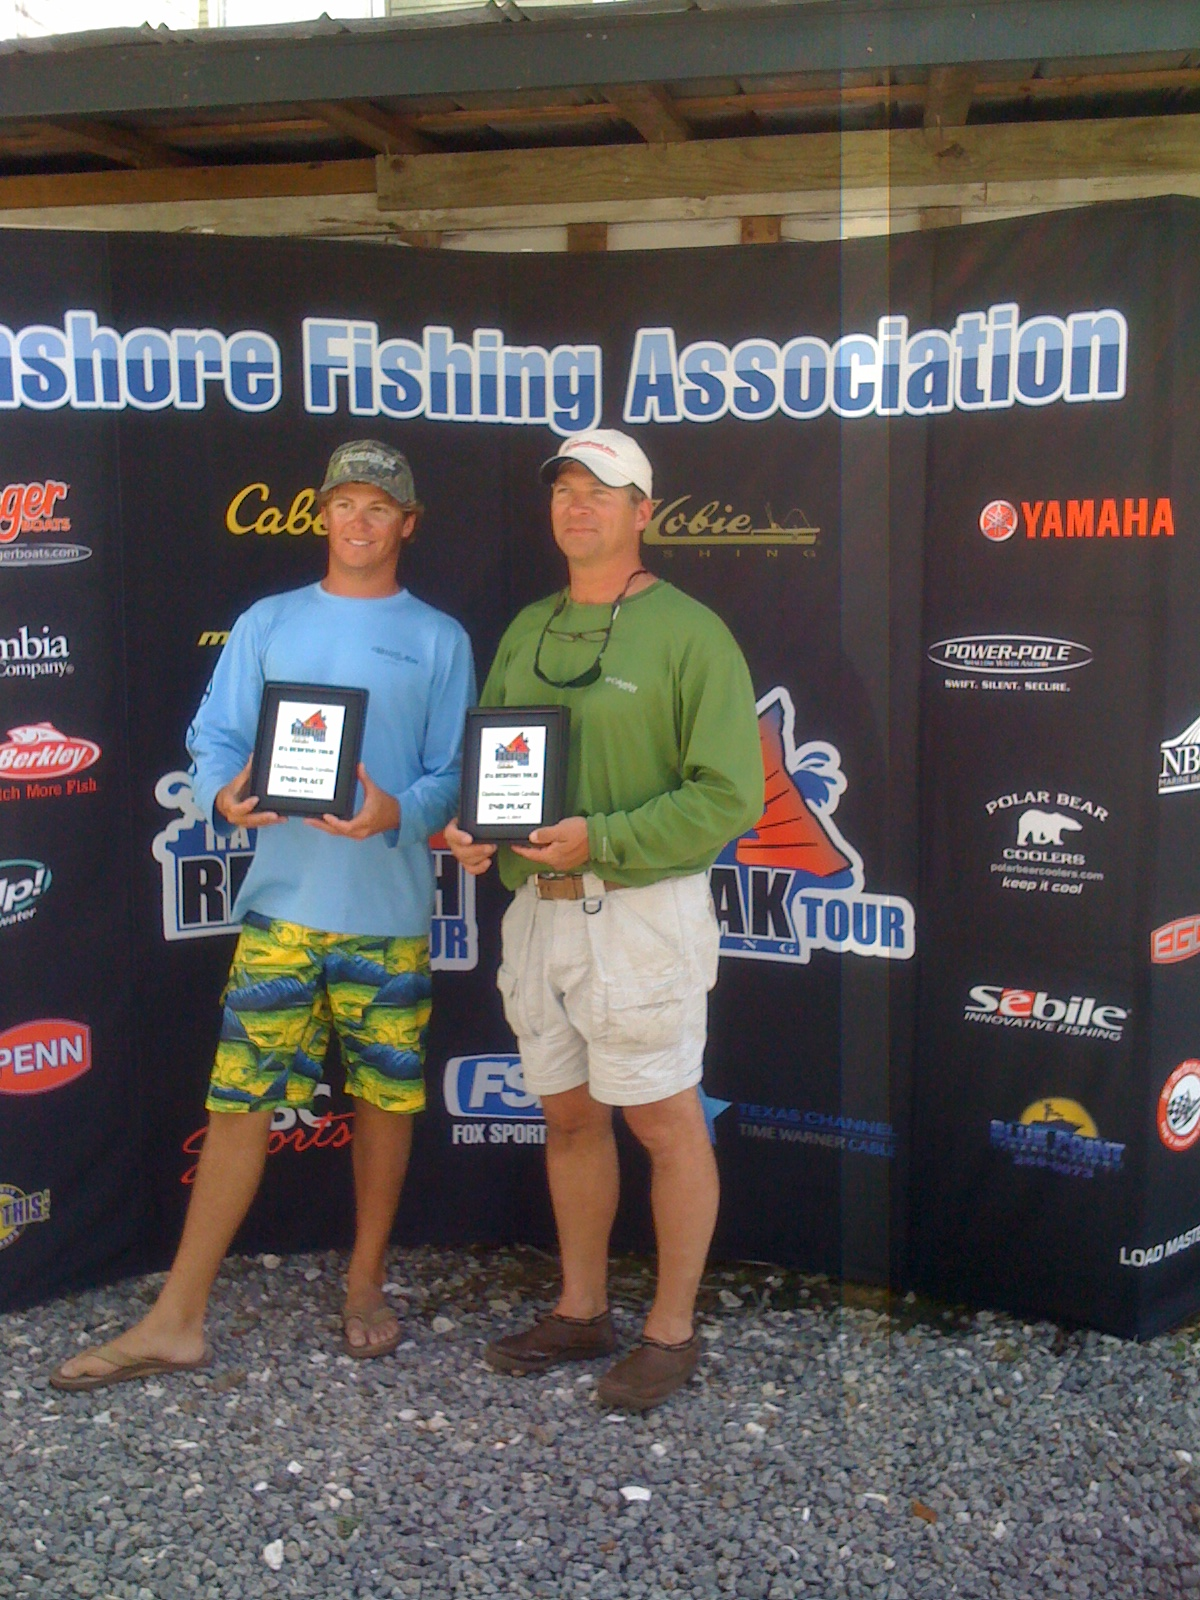 My dad and I took 2nd place in the IFA redfish tour Charleston event back in 2012. We took home two sweet plaques and a decent paycheck.